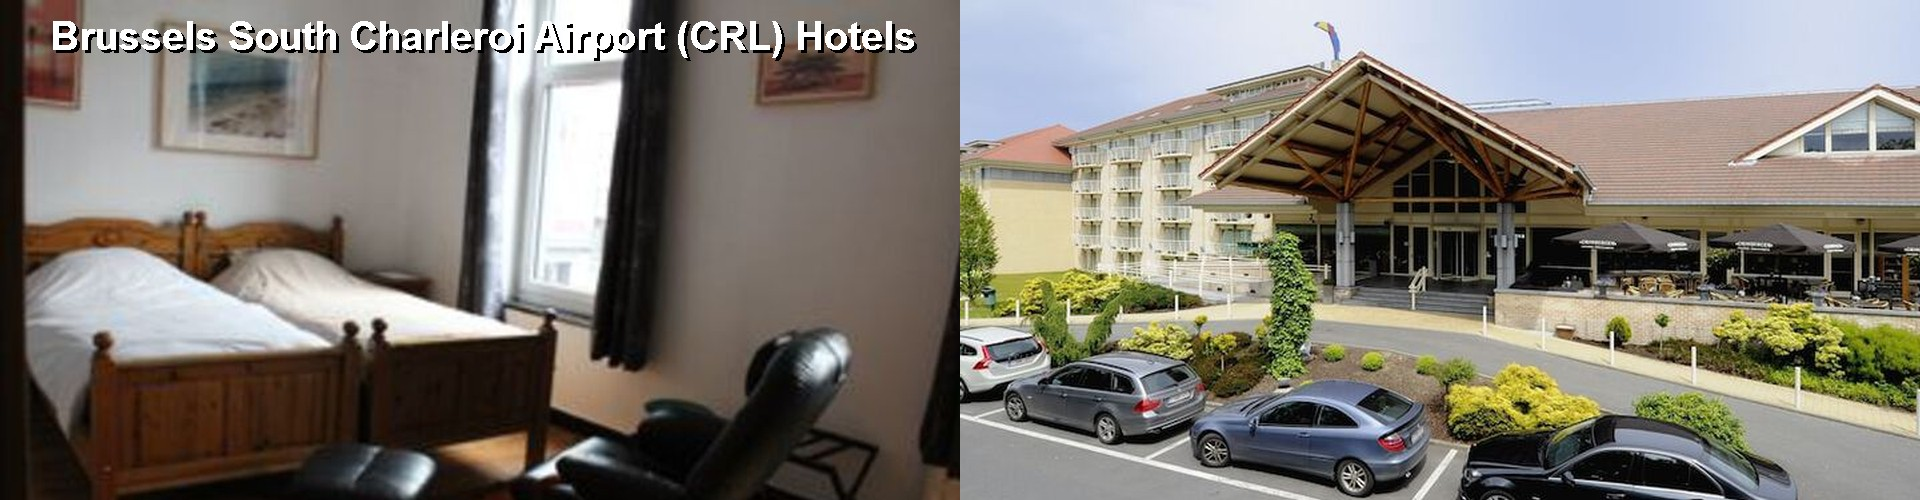 5 Best Hotels Near Brussels South Charleroi Airport Crl